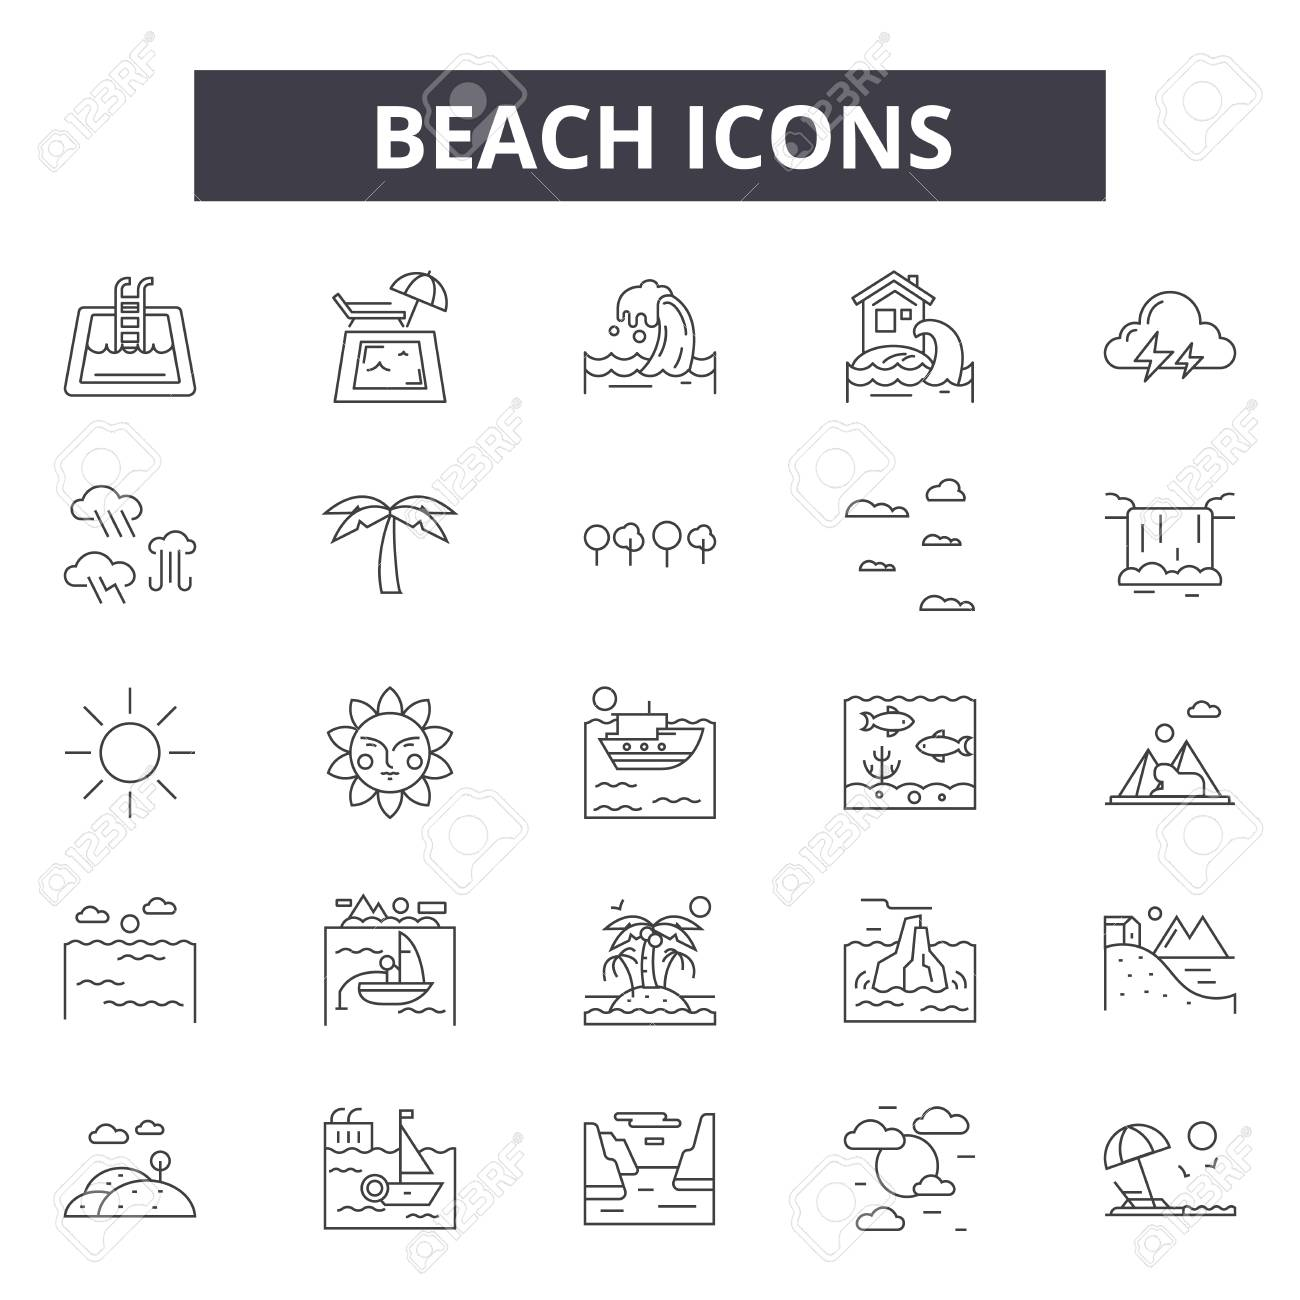 Beach line icons for web and mobile. Editable stroke signs. Beach outline concept illustrations - 119392034